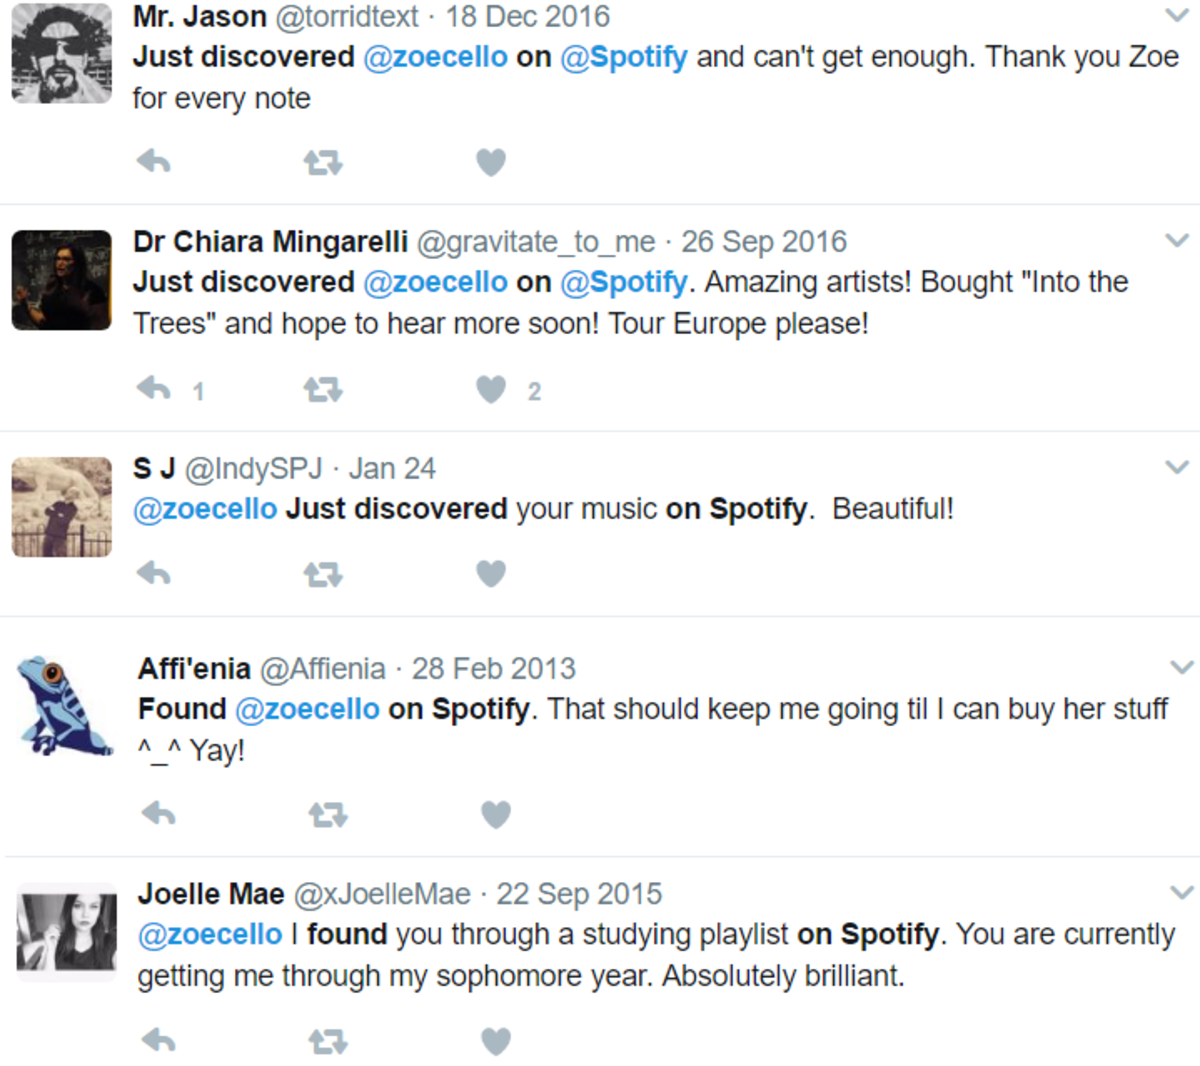 Many indie artists are ambivalent about Spotify because while its payouts are low, it also exposes far more people to their music